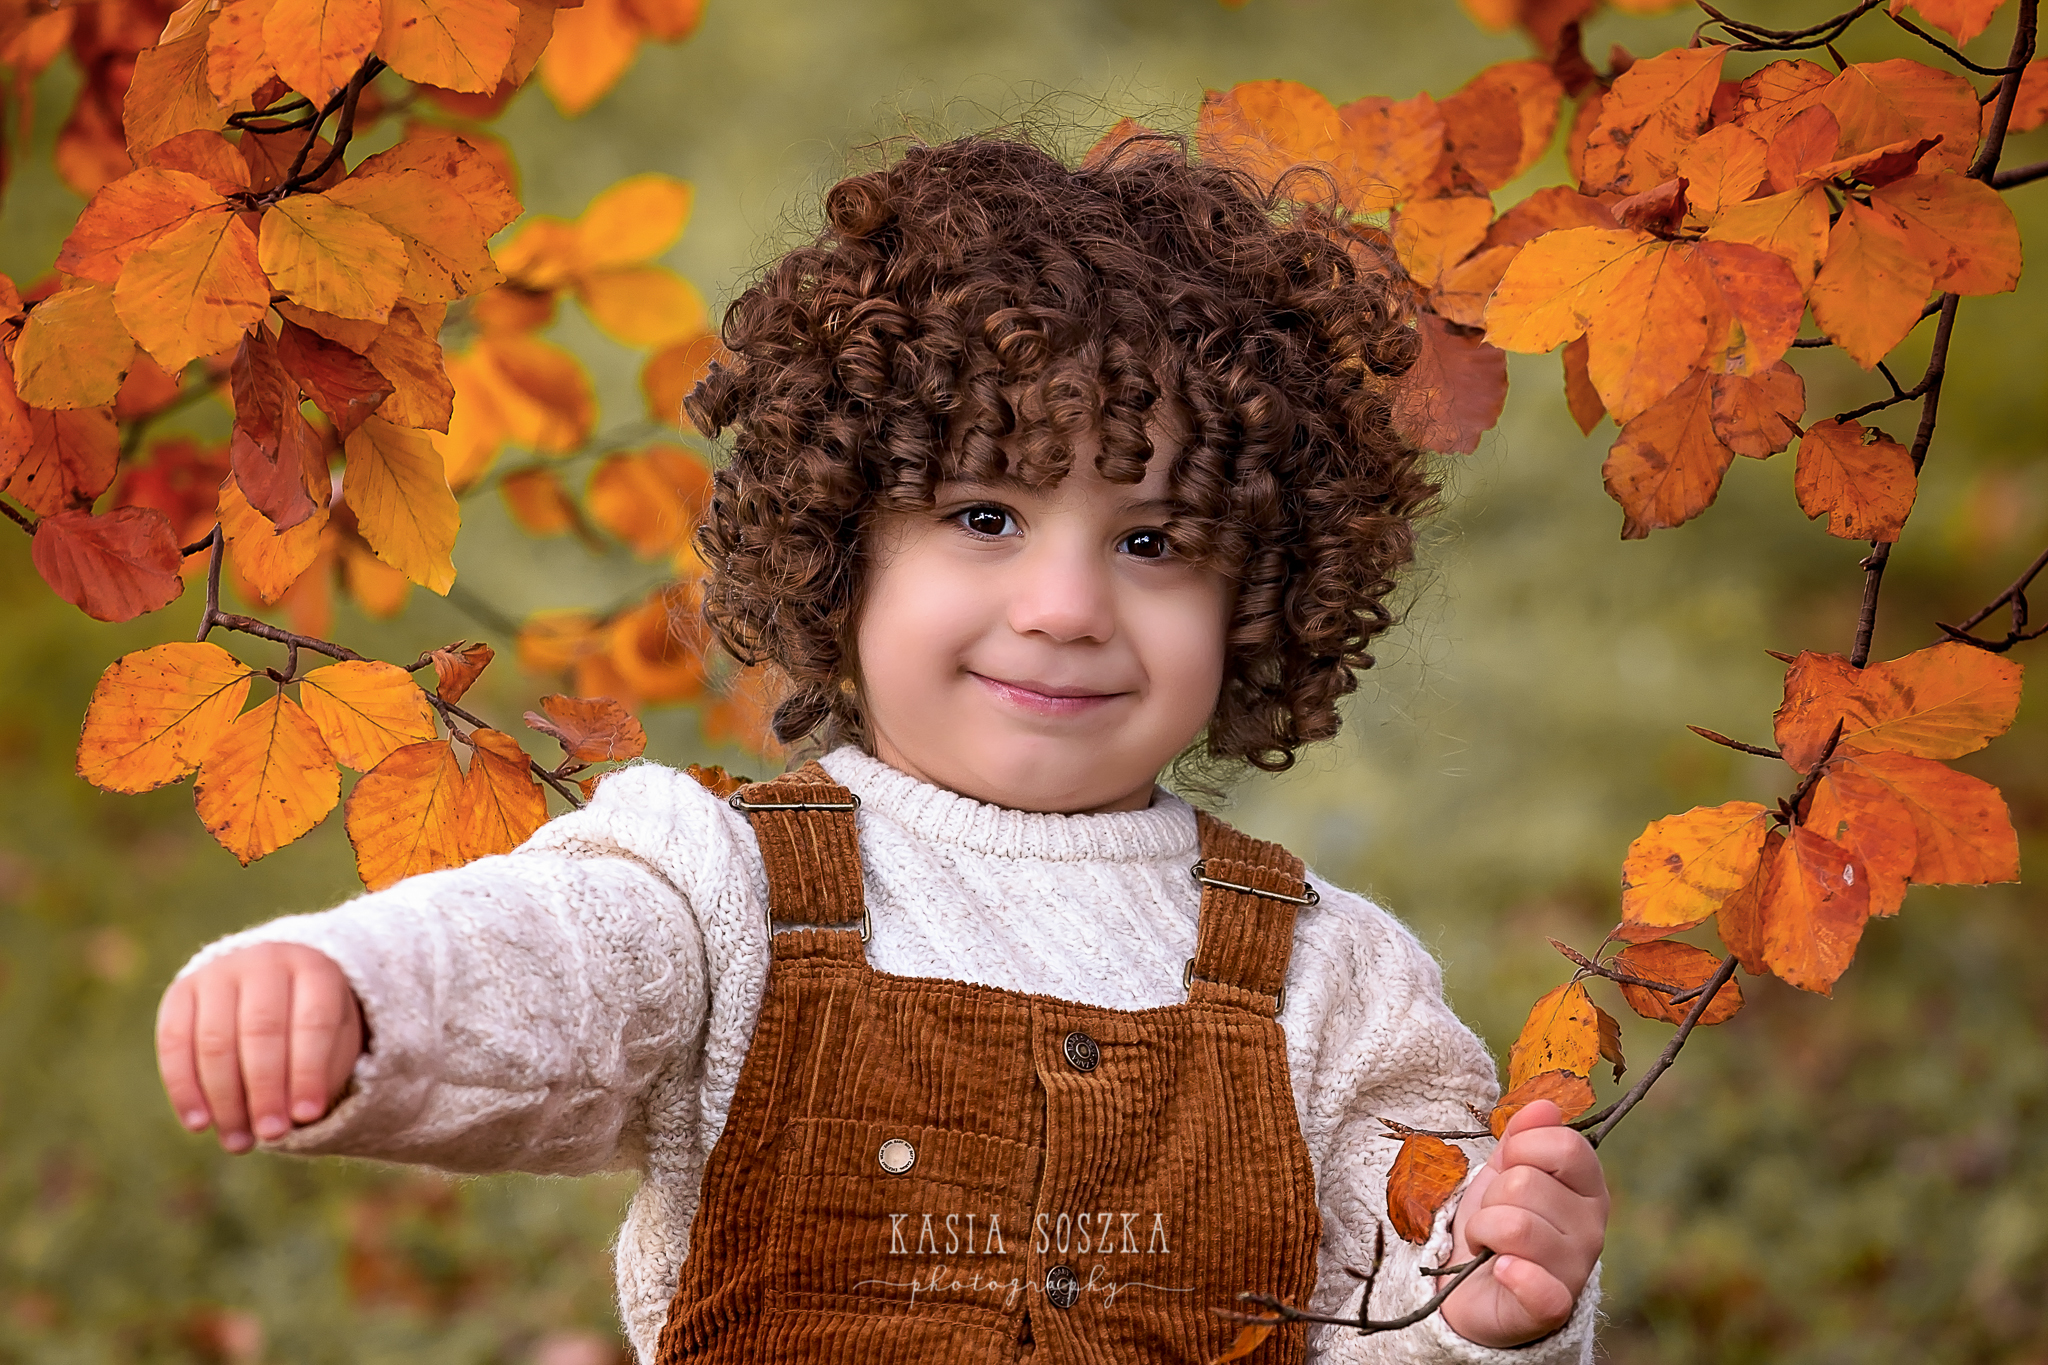 Leeds children photography: cute little boy with dark curly hair holding a branch of autumn leaves.